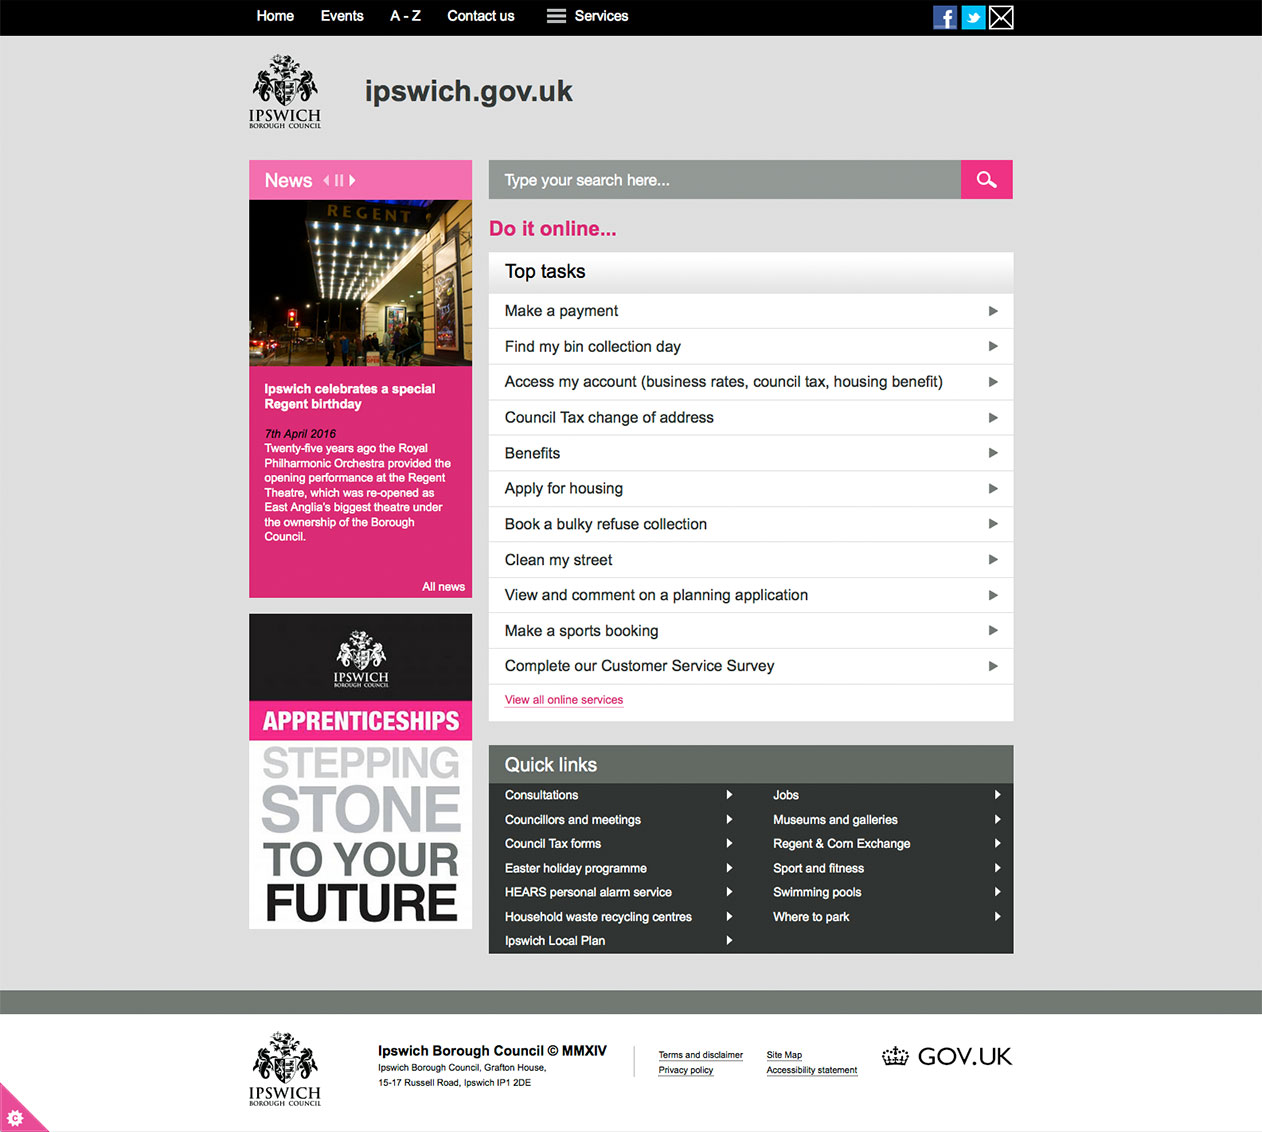 Ipswich Borough Council website